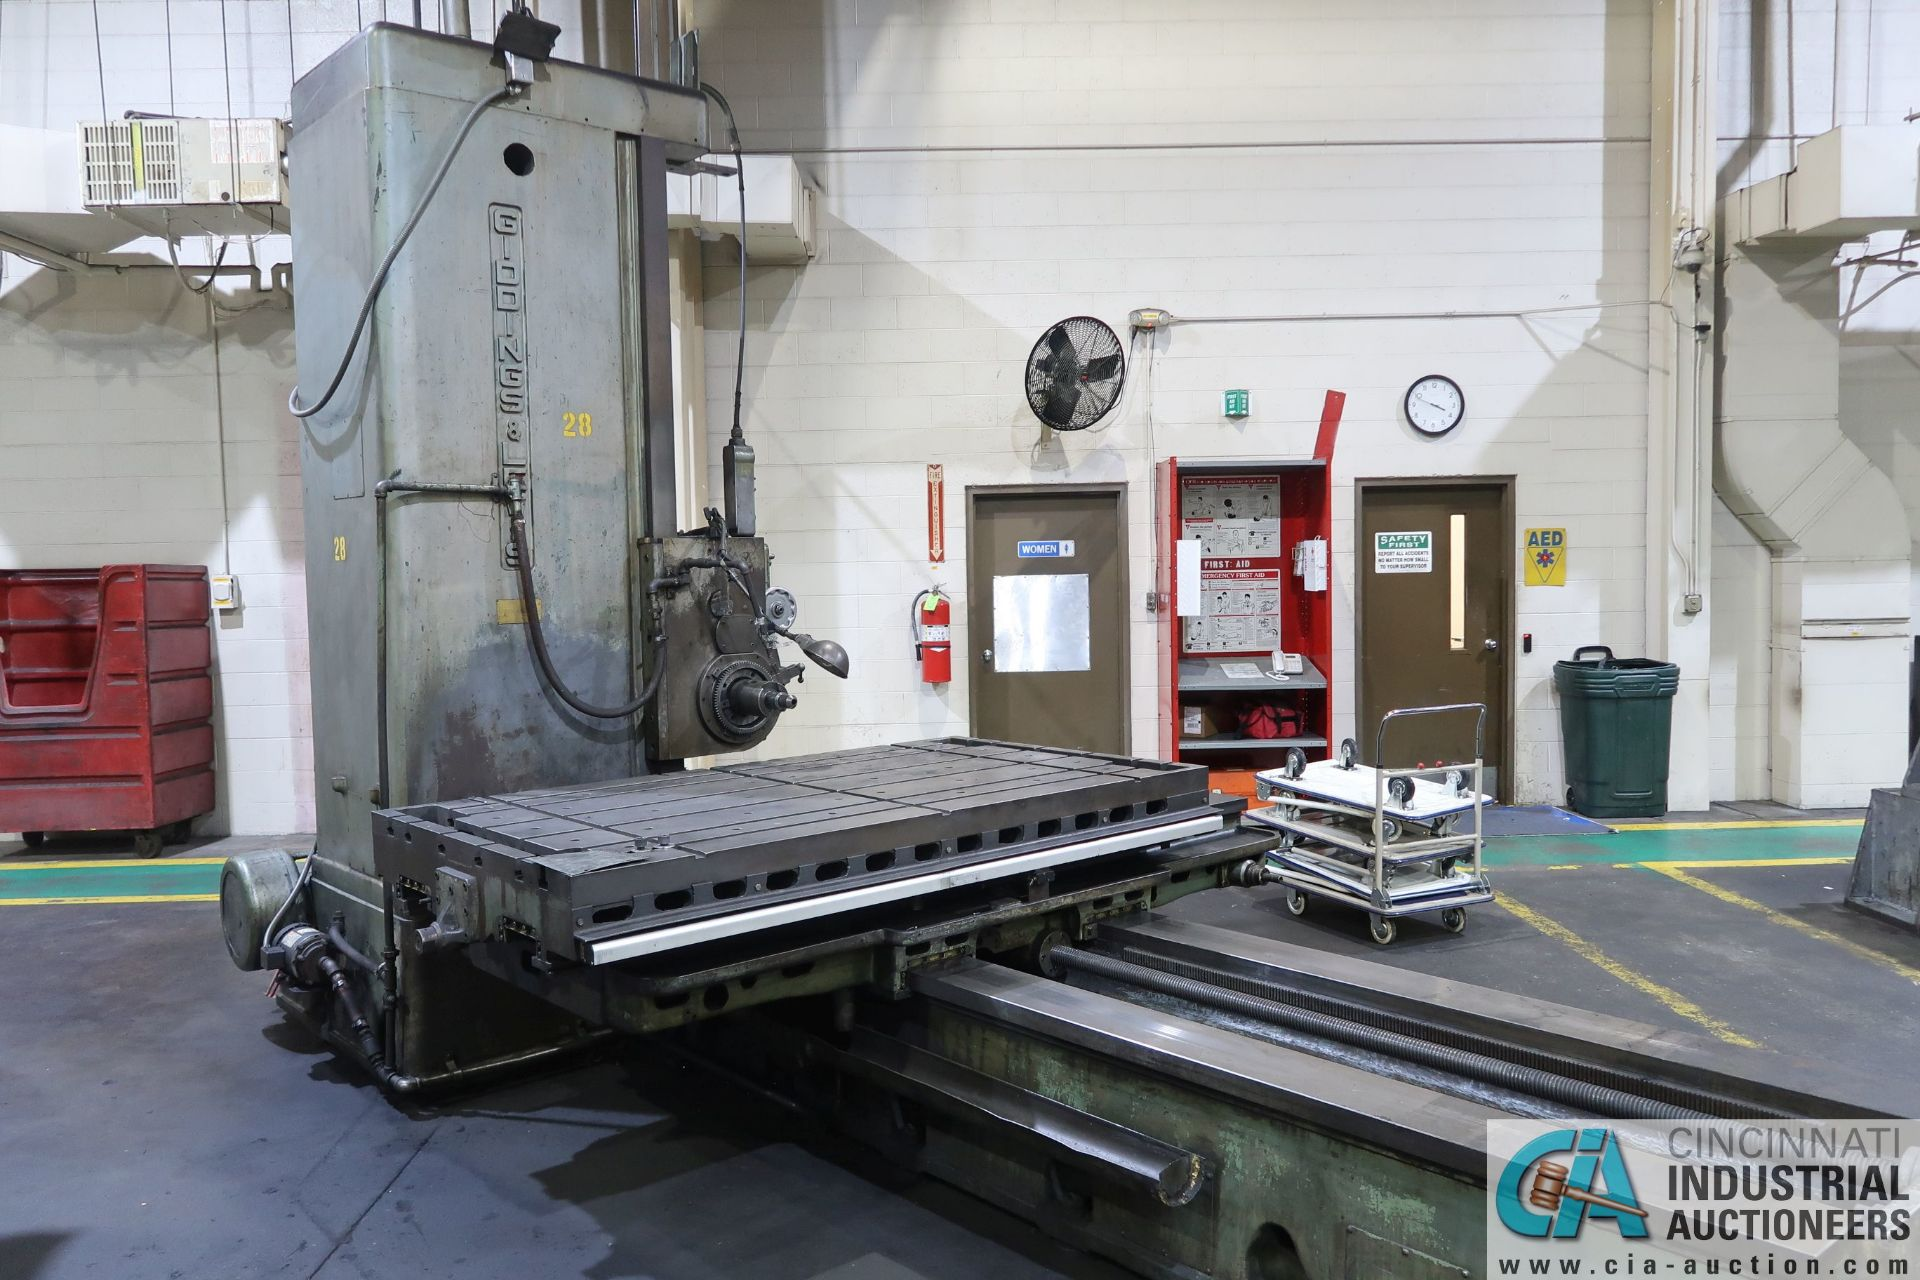 """GIDDINGS AND LEWIS MODEL 350T HORIZONTAL BORING MILL; S/N 150-90-65, 4' X 7' TABLE WITH (2) 24"""" FACE - Image 2 of 16"""